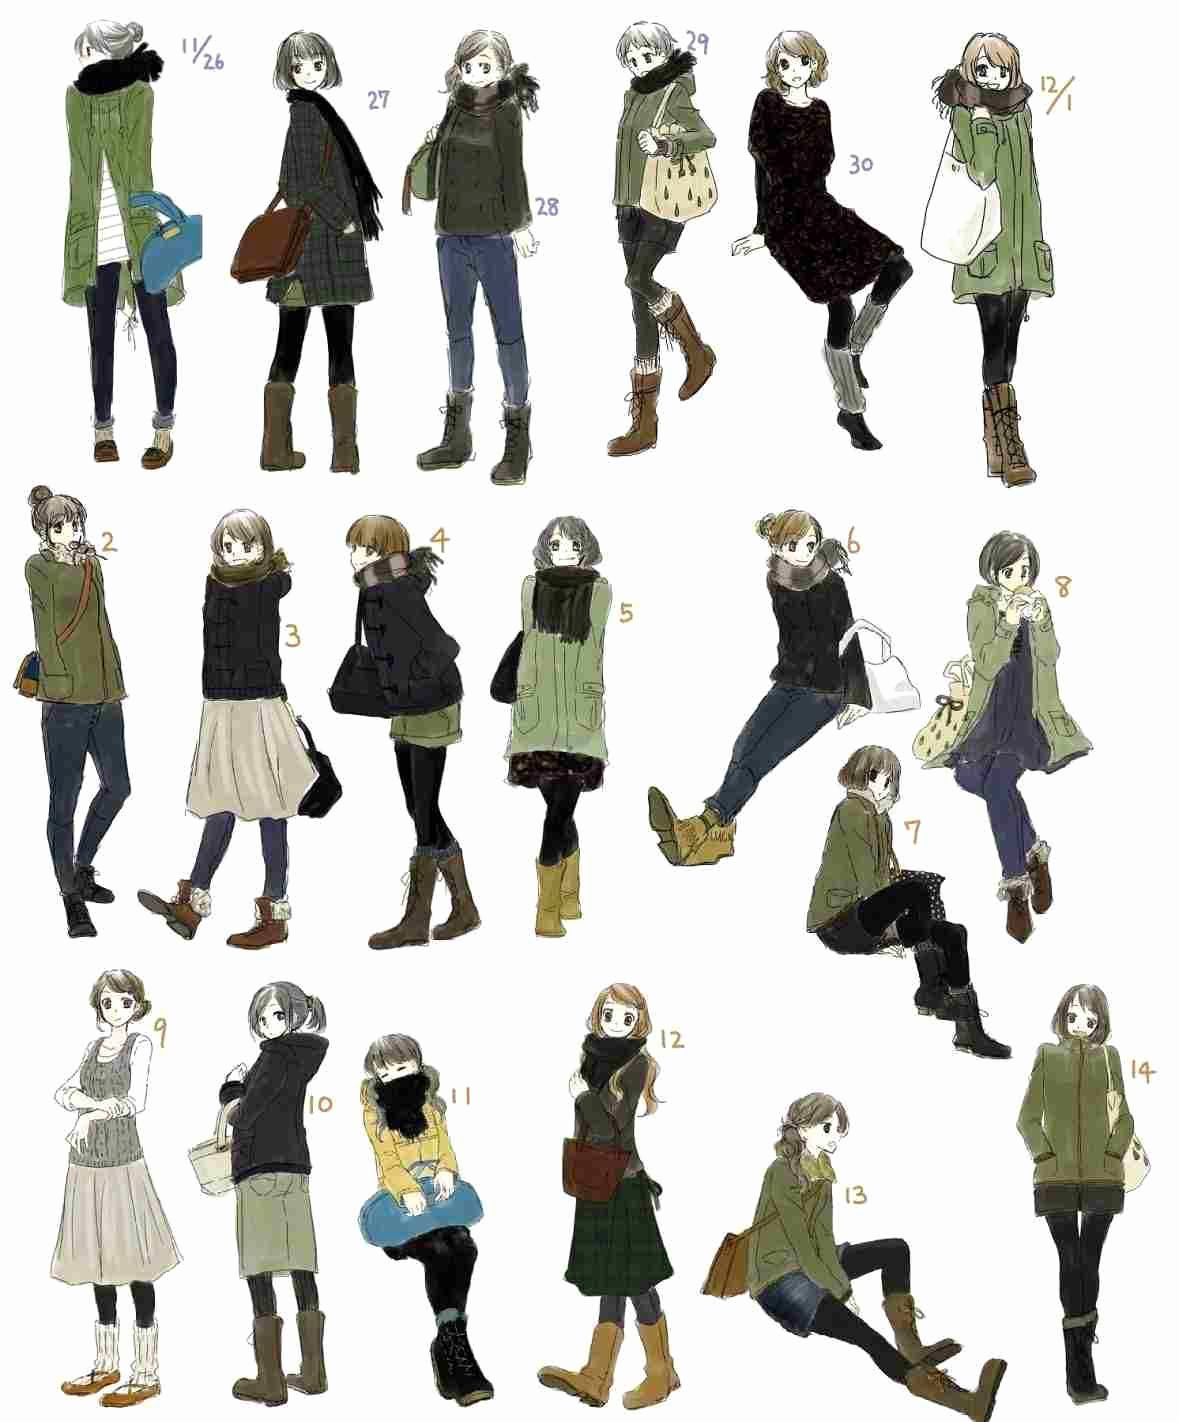 12 Exquisite Learn To Draw Manga Ideas Character Design Girl Casual Art Fashion Drawing